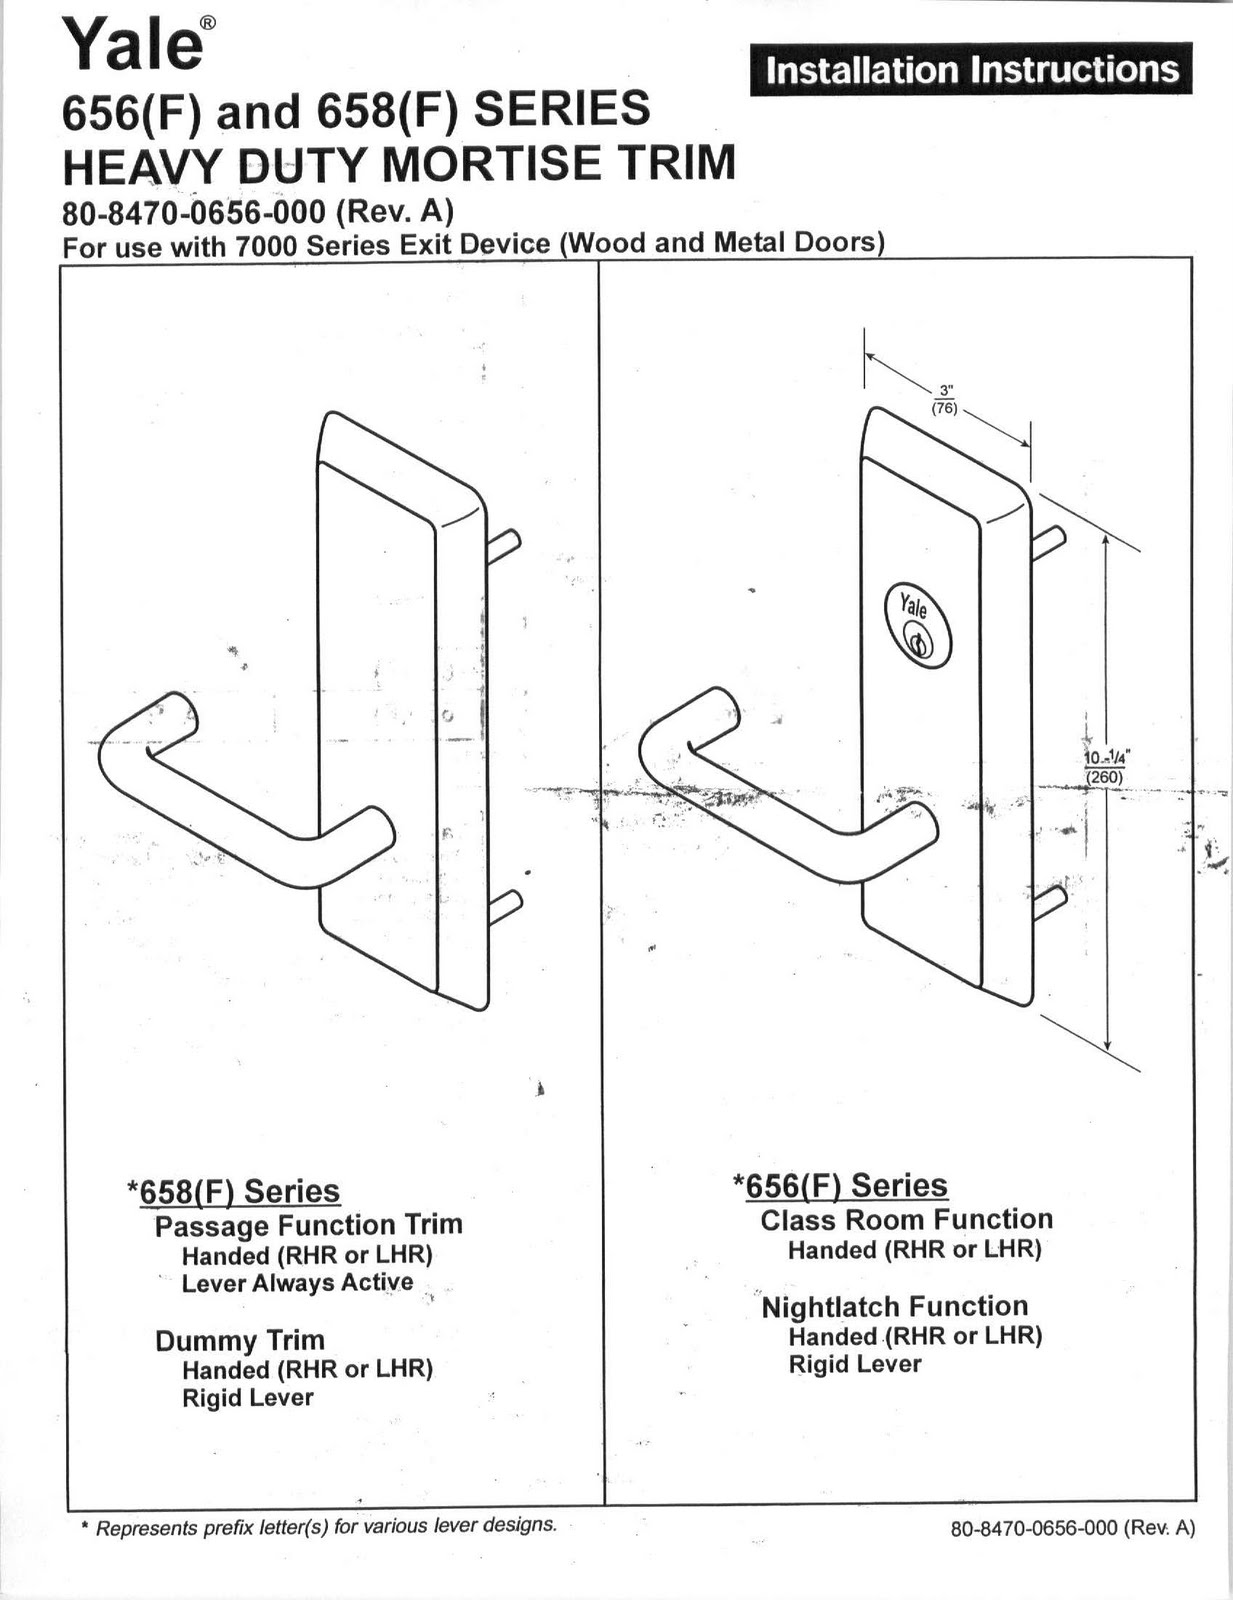 Yale 7000 Series Wiring Diagram on wiring diagrams for gmc 7000 truck